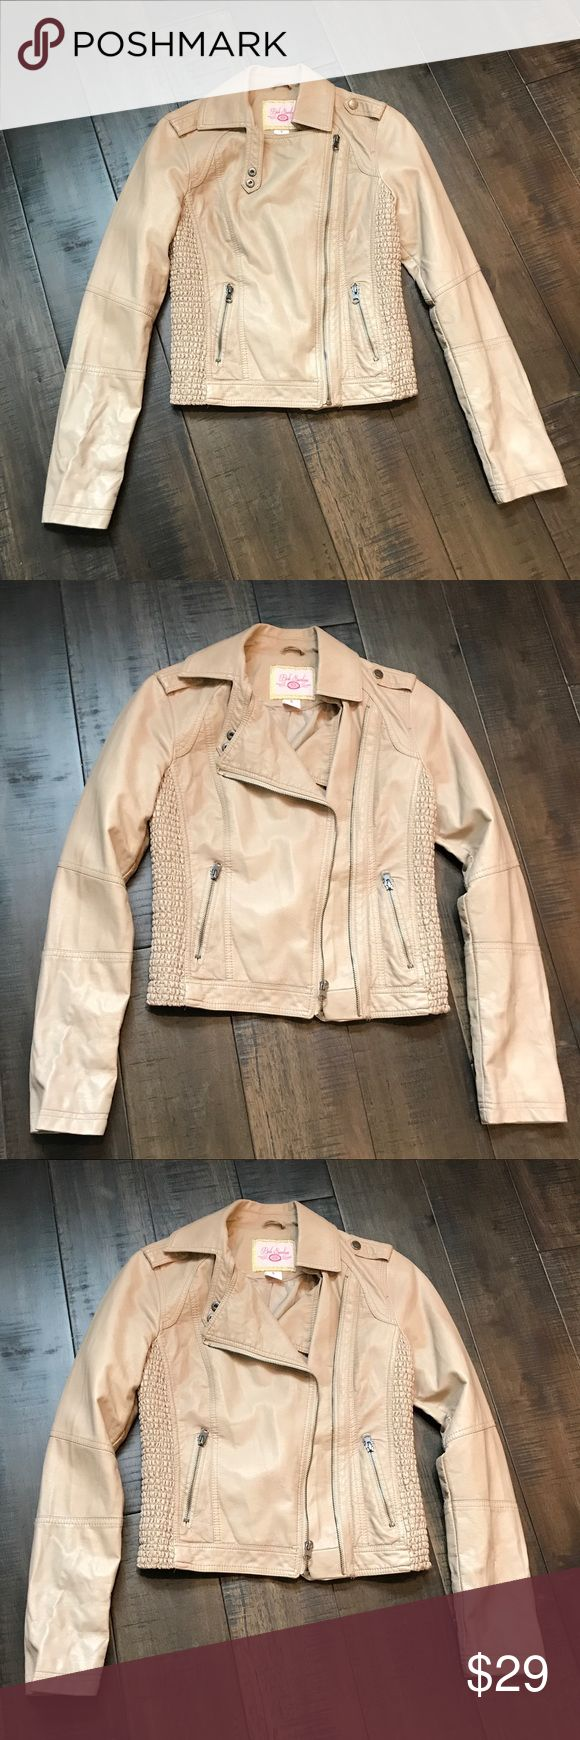 NWOT Tan Leather Jacket! Size Small. Super Cute! NWOT Leather Jacket! Size Small. Color is a Light Tan/Dark Beige.  Super cute and perfect for any occasion! :) FYI - The leather is not real leather. However, it is nice material!  Willing to negotiate, so offer me your best price! :) Pink Envelope Jackets & Coats